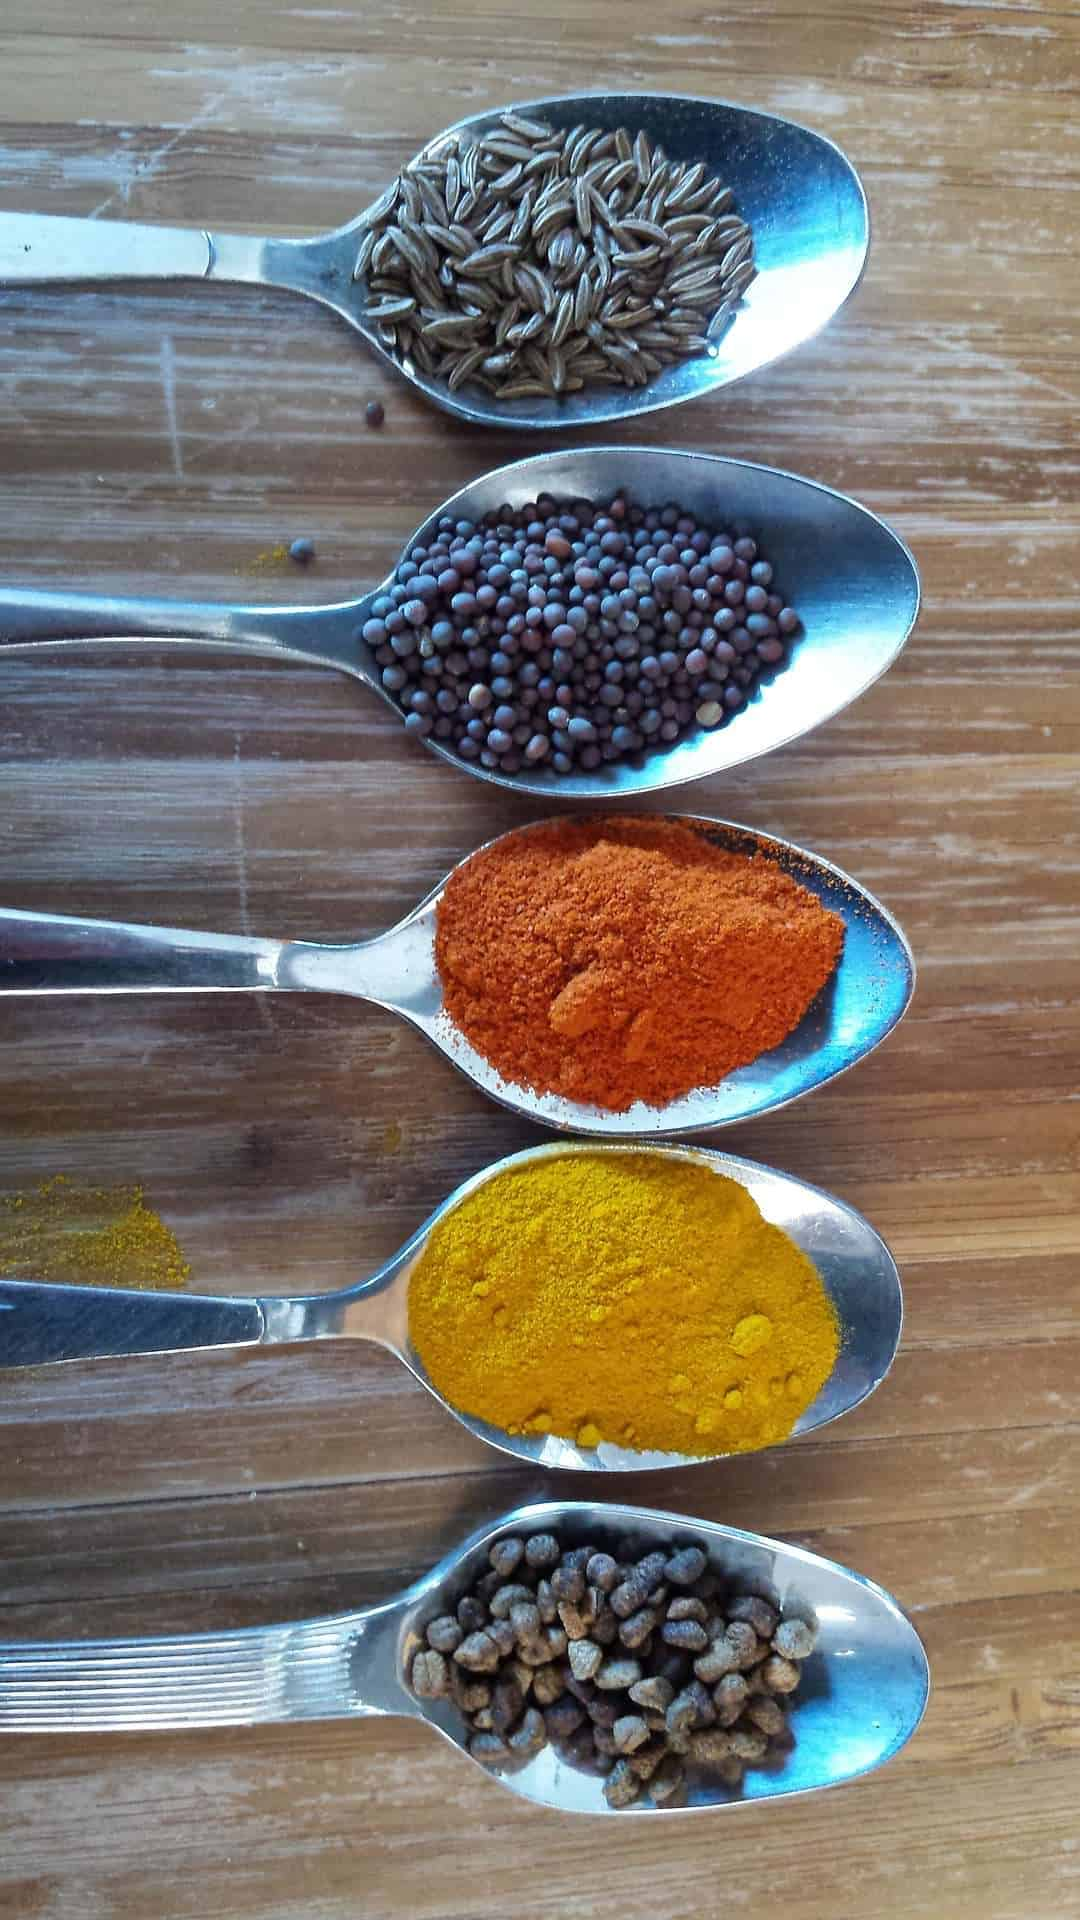 5 spoons full of different spices